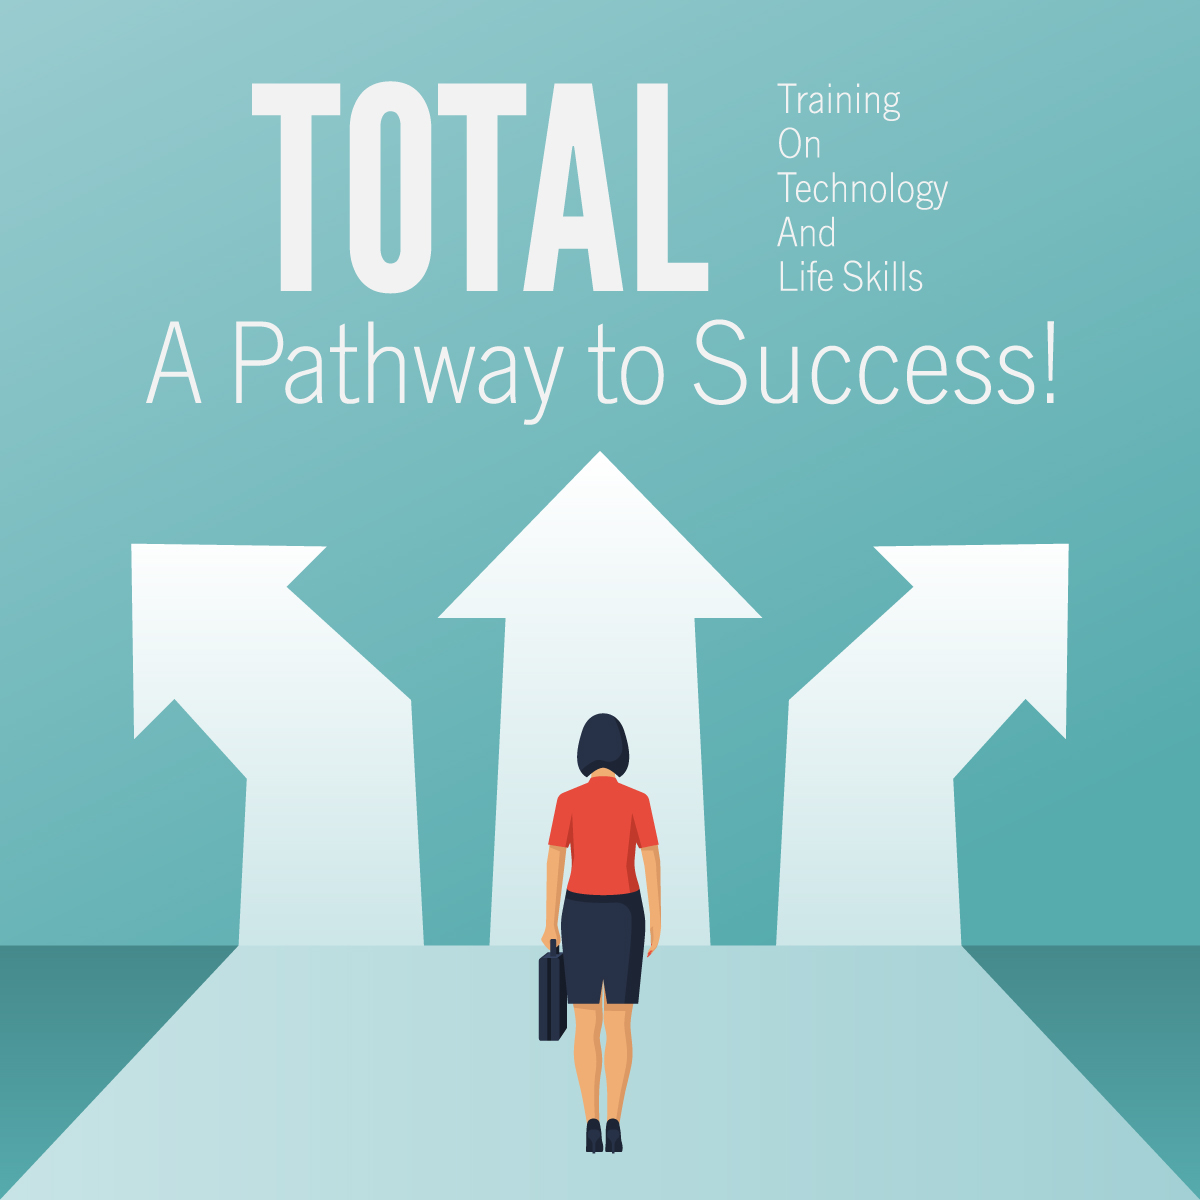 TOTAL: A Pathway to Success!